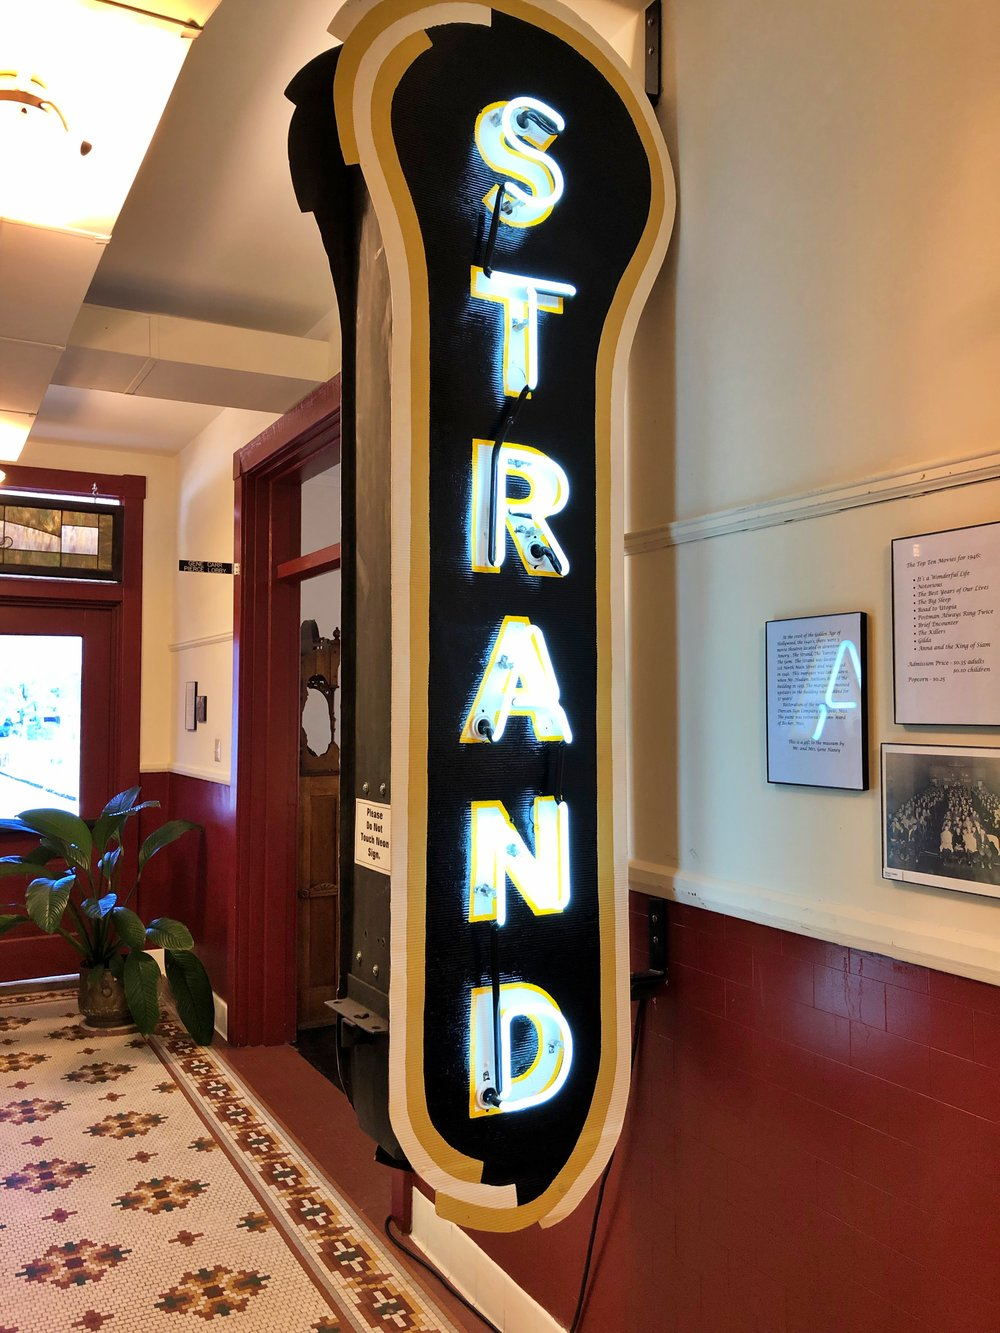 Marquis from the old Strand Theater in Amory